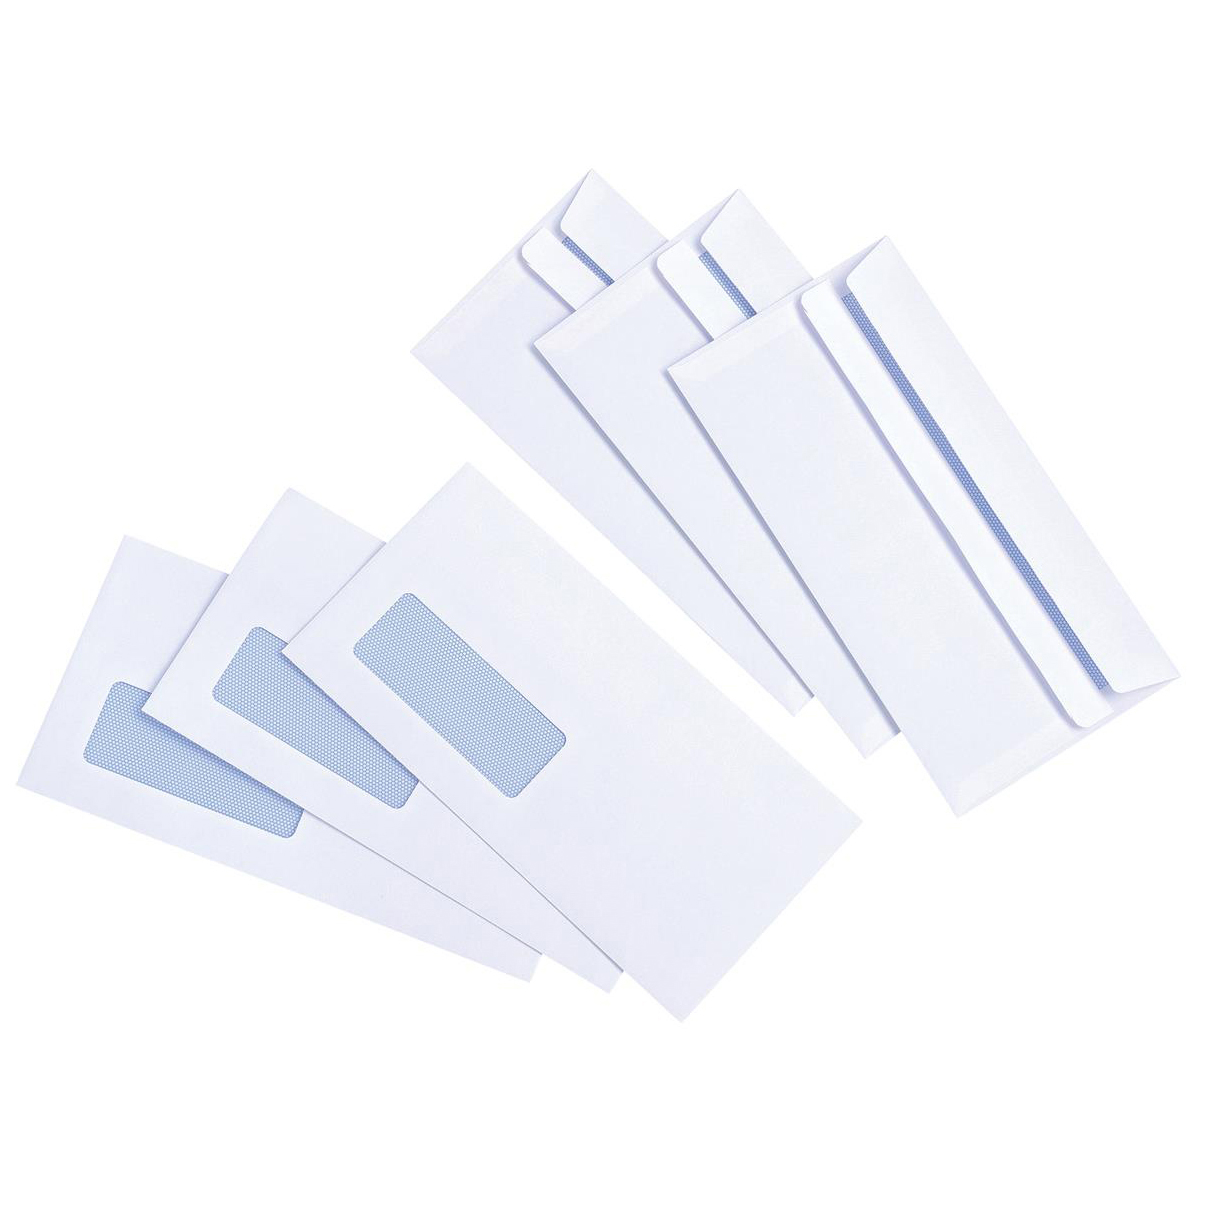 5 Star Value Envelopes Wallet Press Seal Window 90gsm DL 110x220mm White Pack 1000